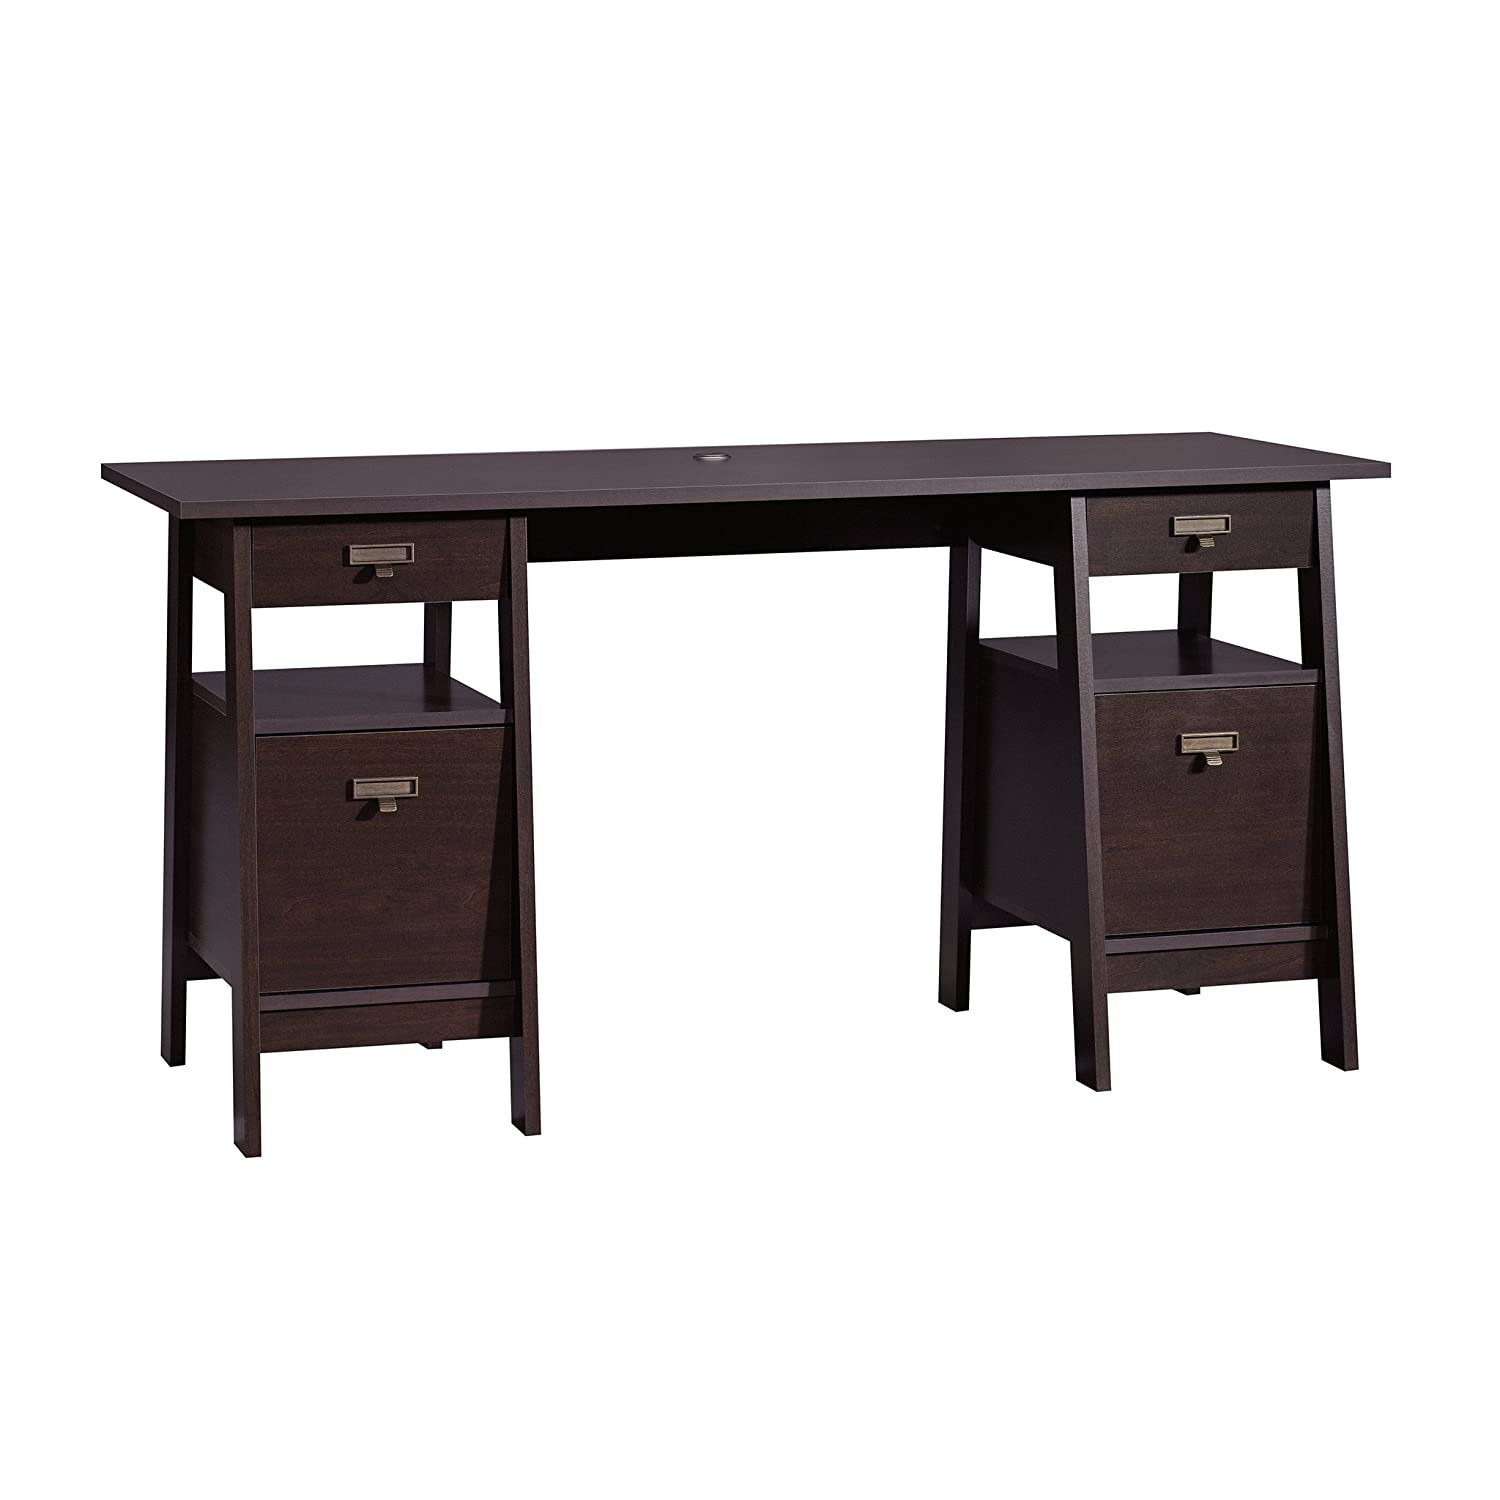 Sauder shoal creek executive desk in jamocha wood -  Sauder Shoal Creek Executive Desk Instructions By Amazon Com Sauder Executive Trestle Desk Jamocha Wood Finish